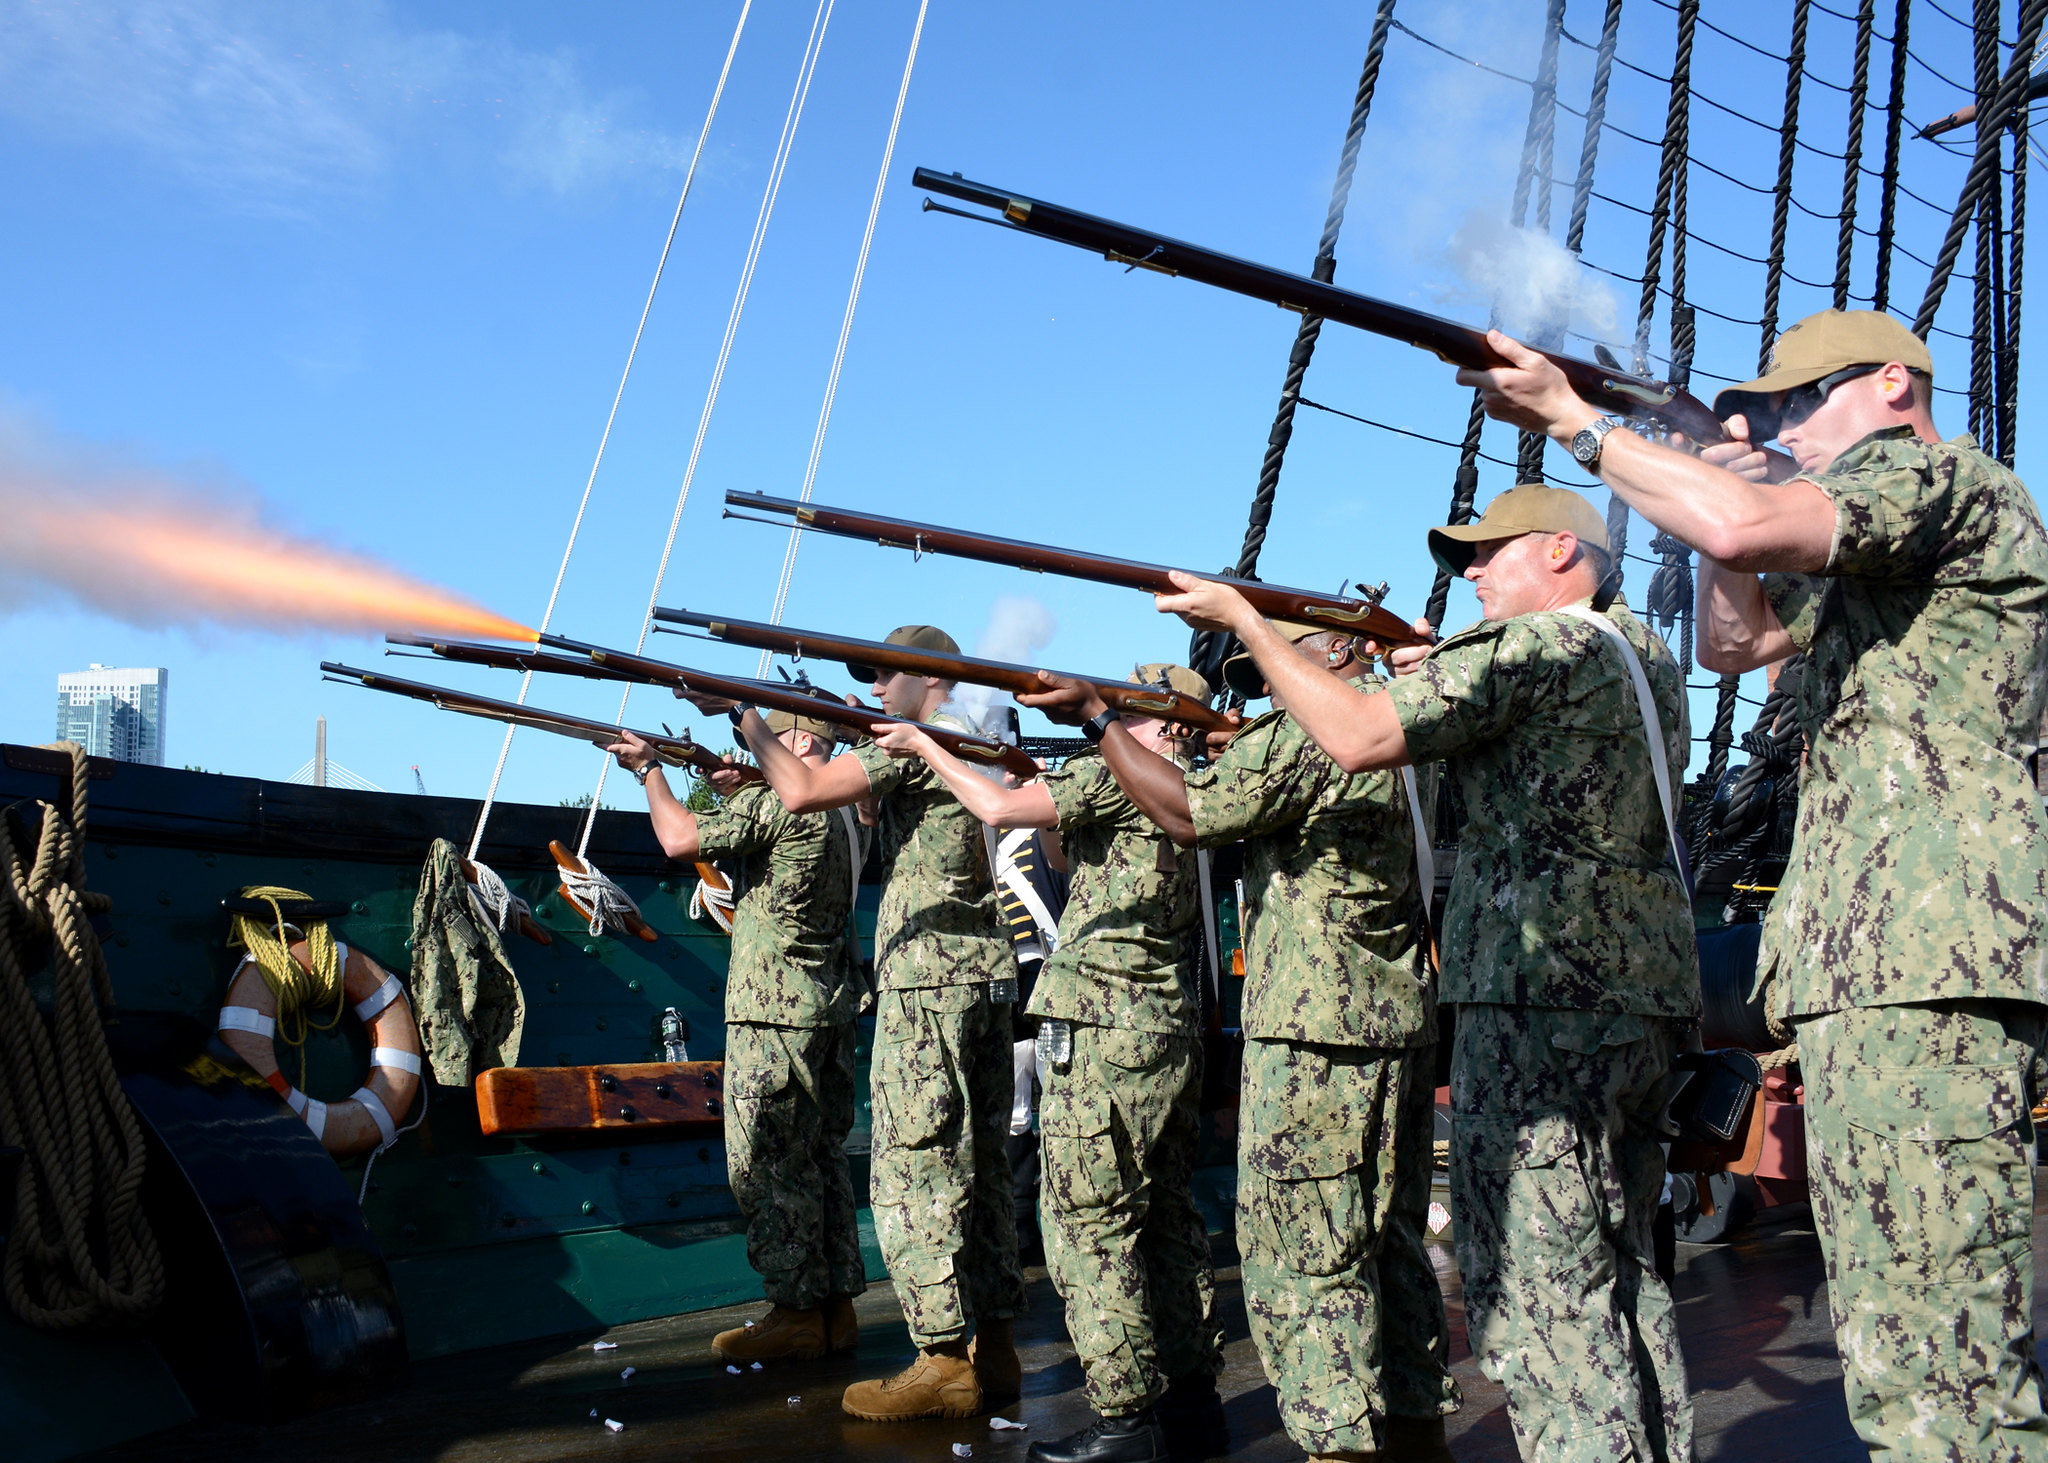 Chief petty officer selects come together on Aug. 20, 2019, for Chief Heritage weeks events aboard the oldest commissioned warship afloat in the world, USS Constitution, in Boston. (Mass Communication Specialist 2nd Class Jerine Lee/Navy)